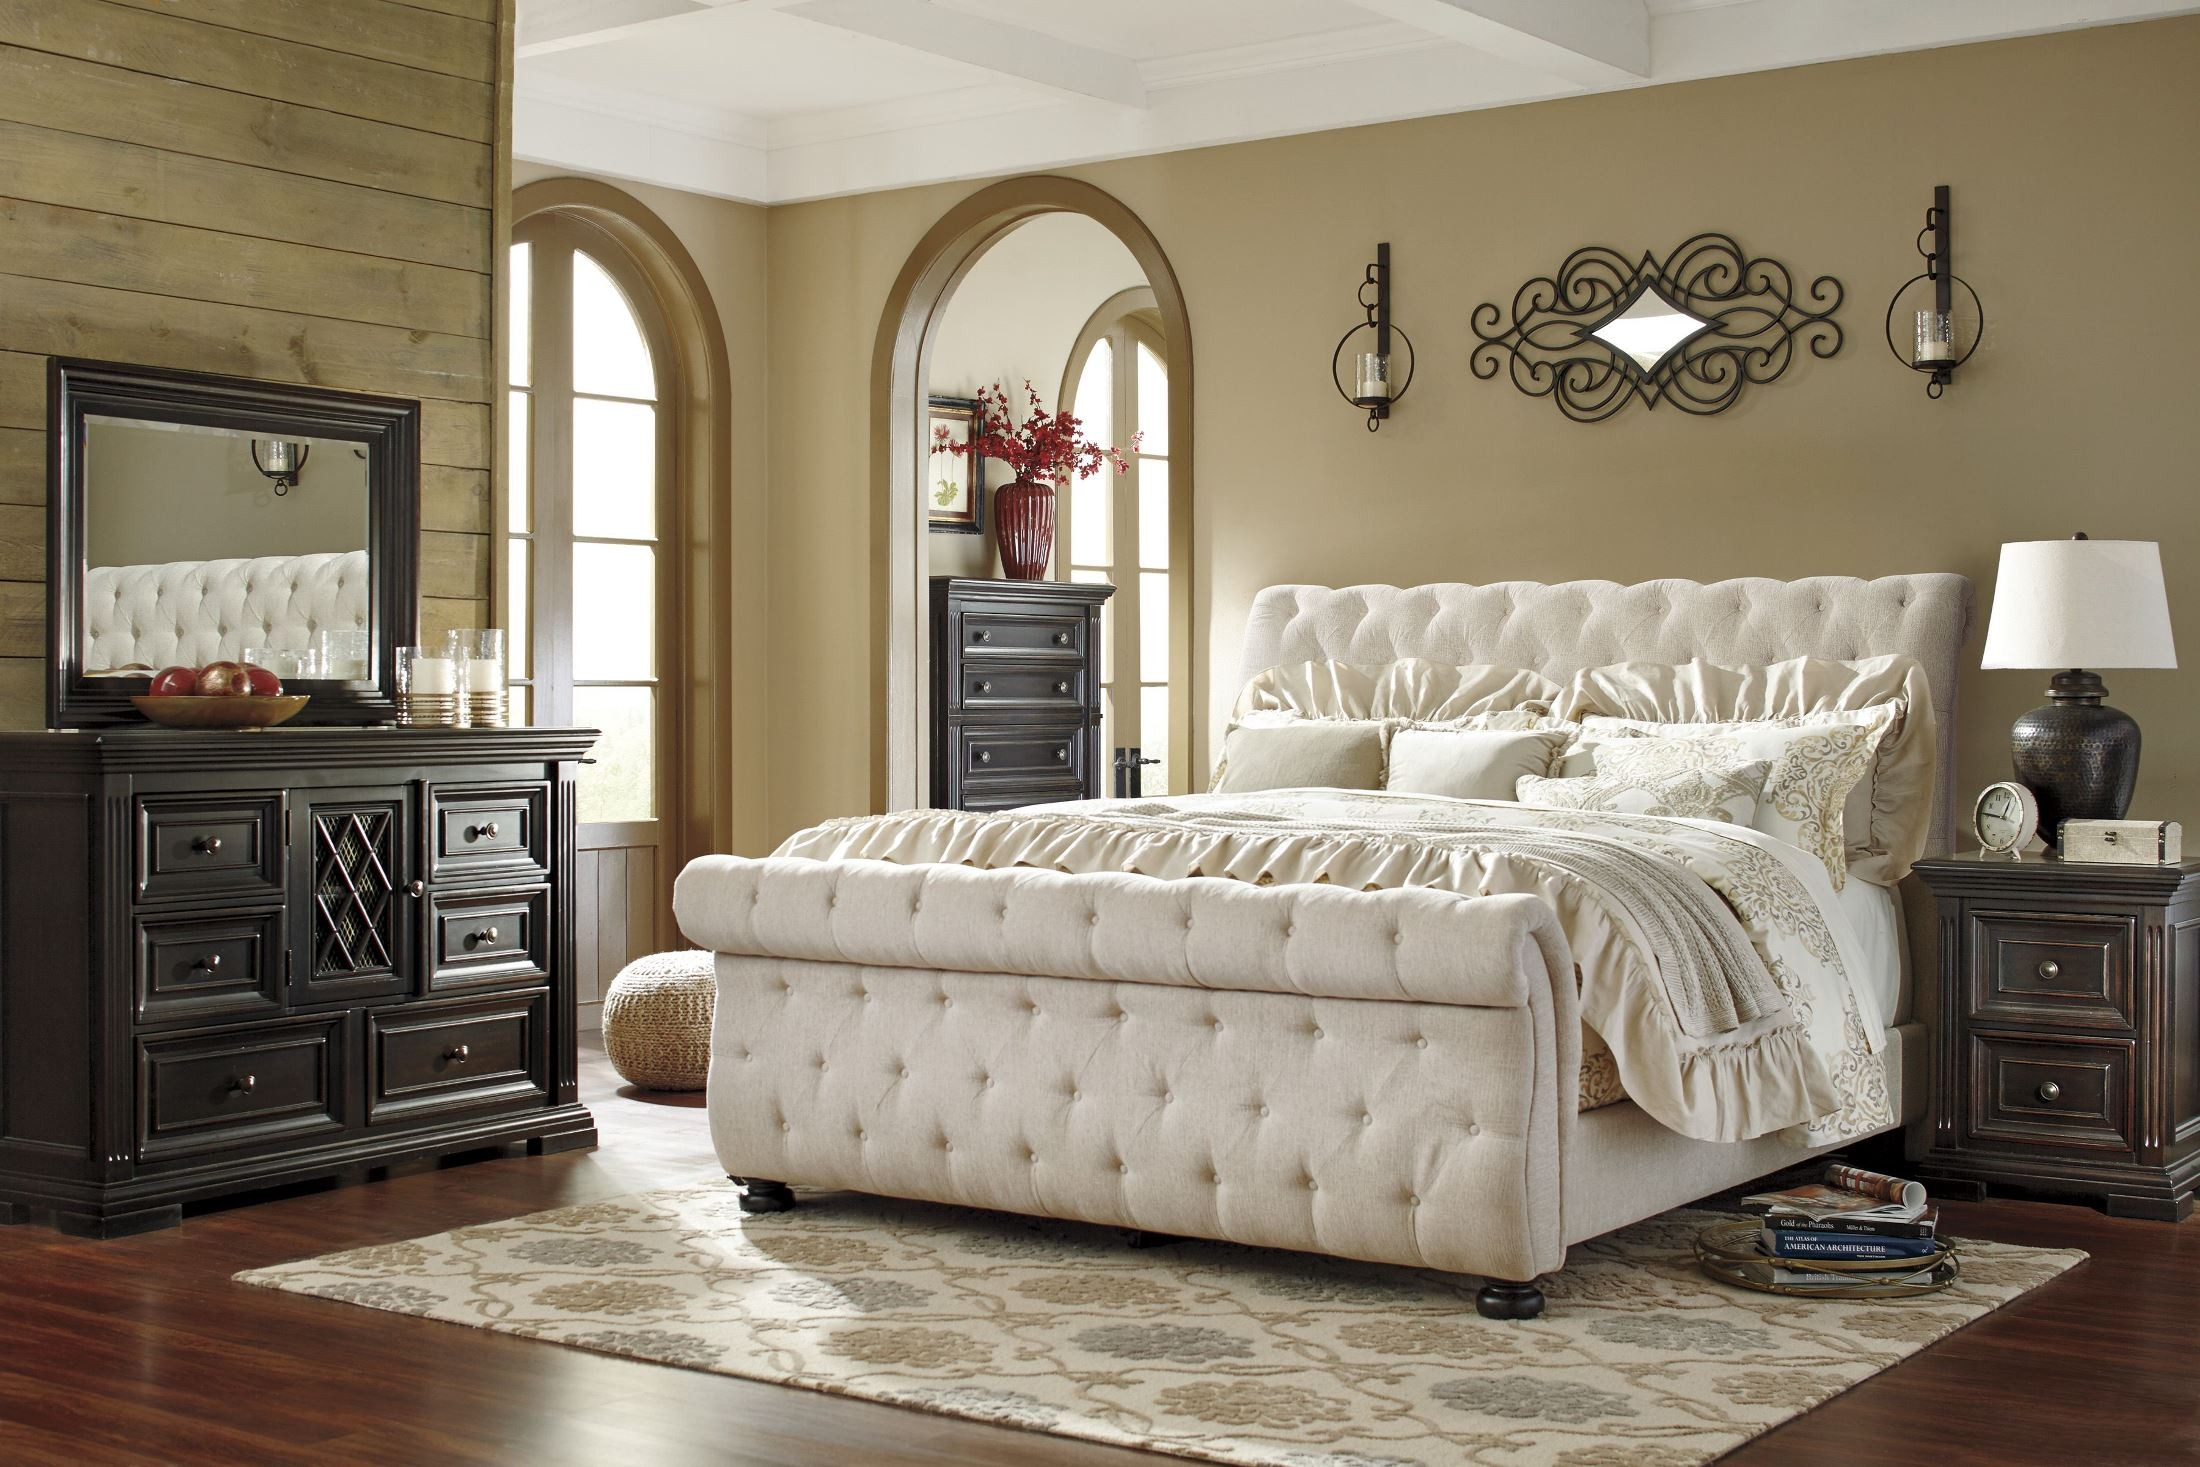 willenburg linen king upholstered sleigh bed 1681861 1681862 1681860 - King Padded Bedroom Designs